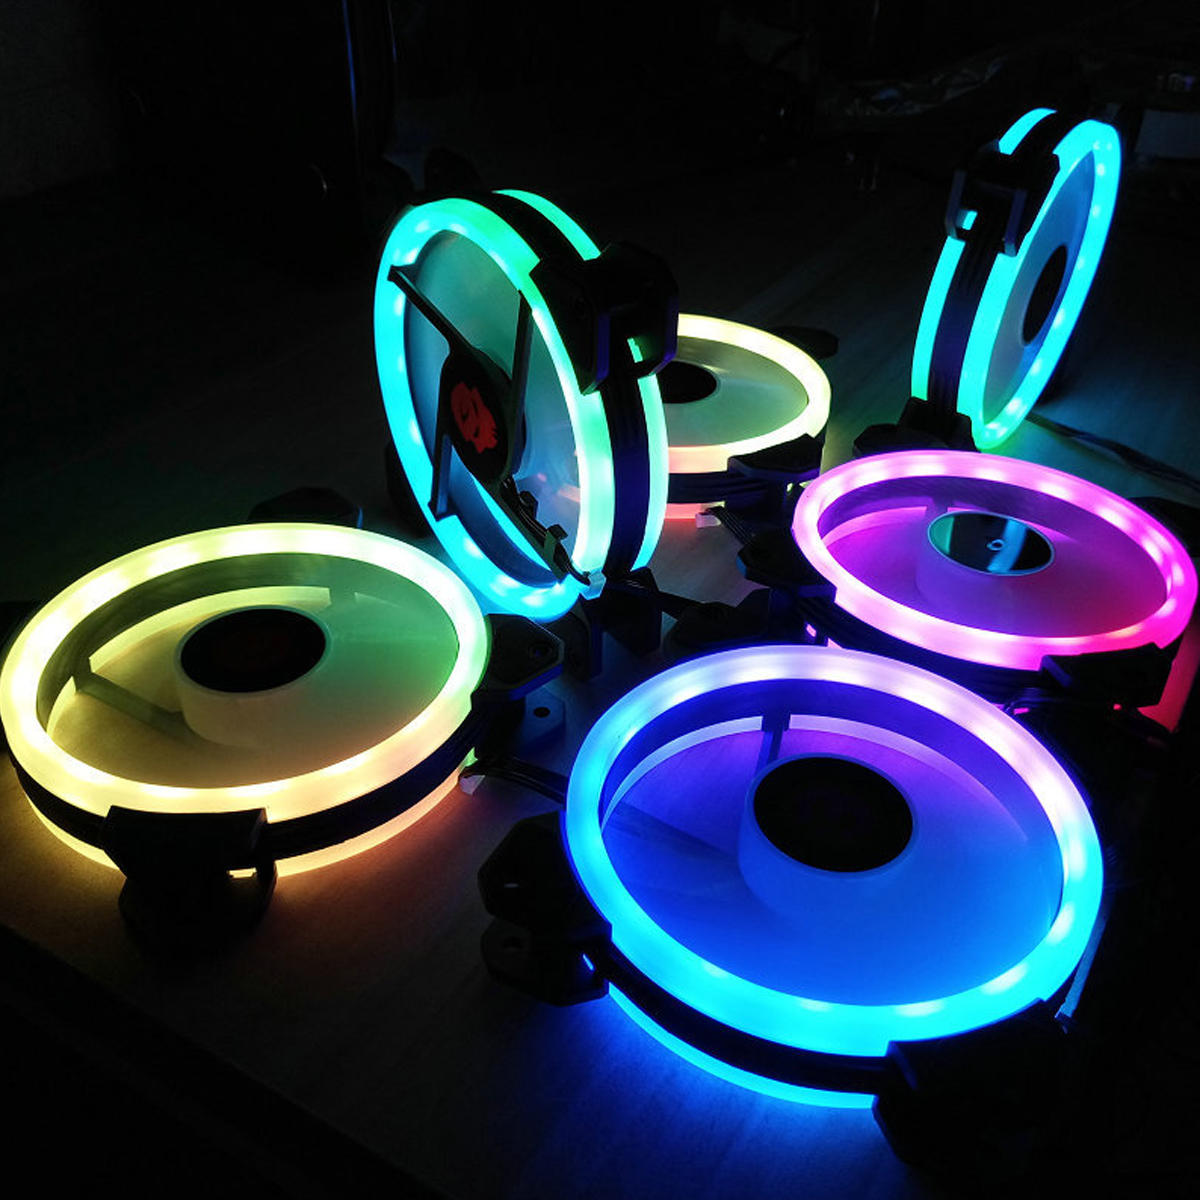 Coolmoon 6PCS 120mm RGB PC Fans 12 Monochromatic Light Adjustable CPU Cooling Fan With the Remote Control - 2